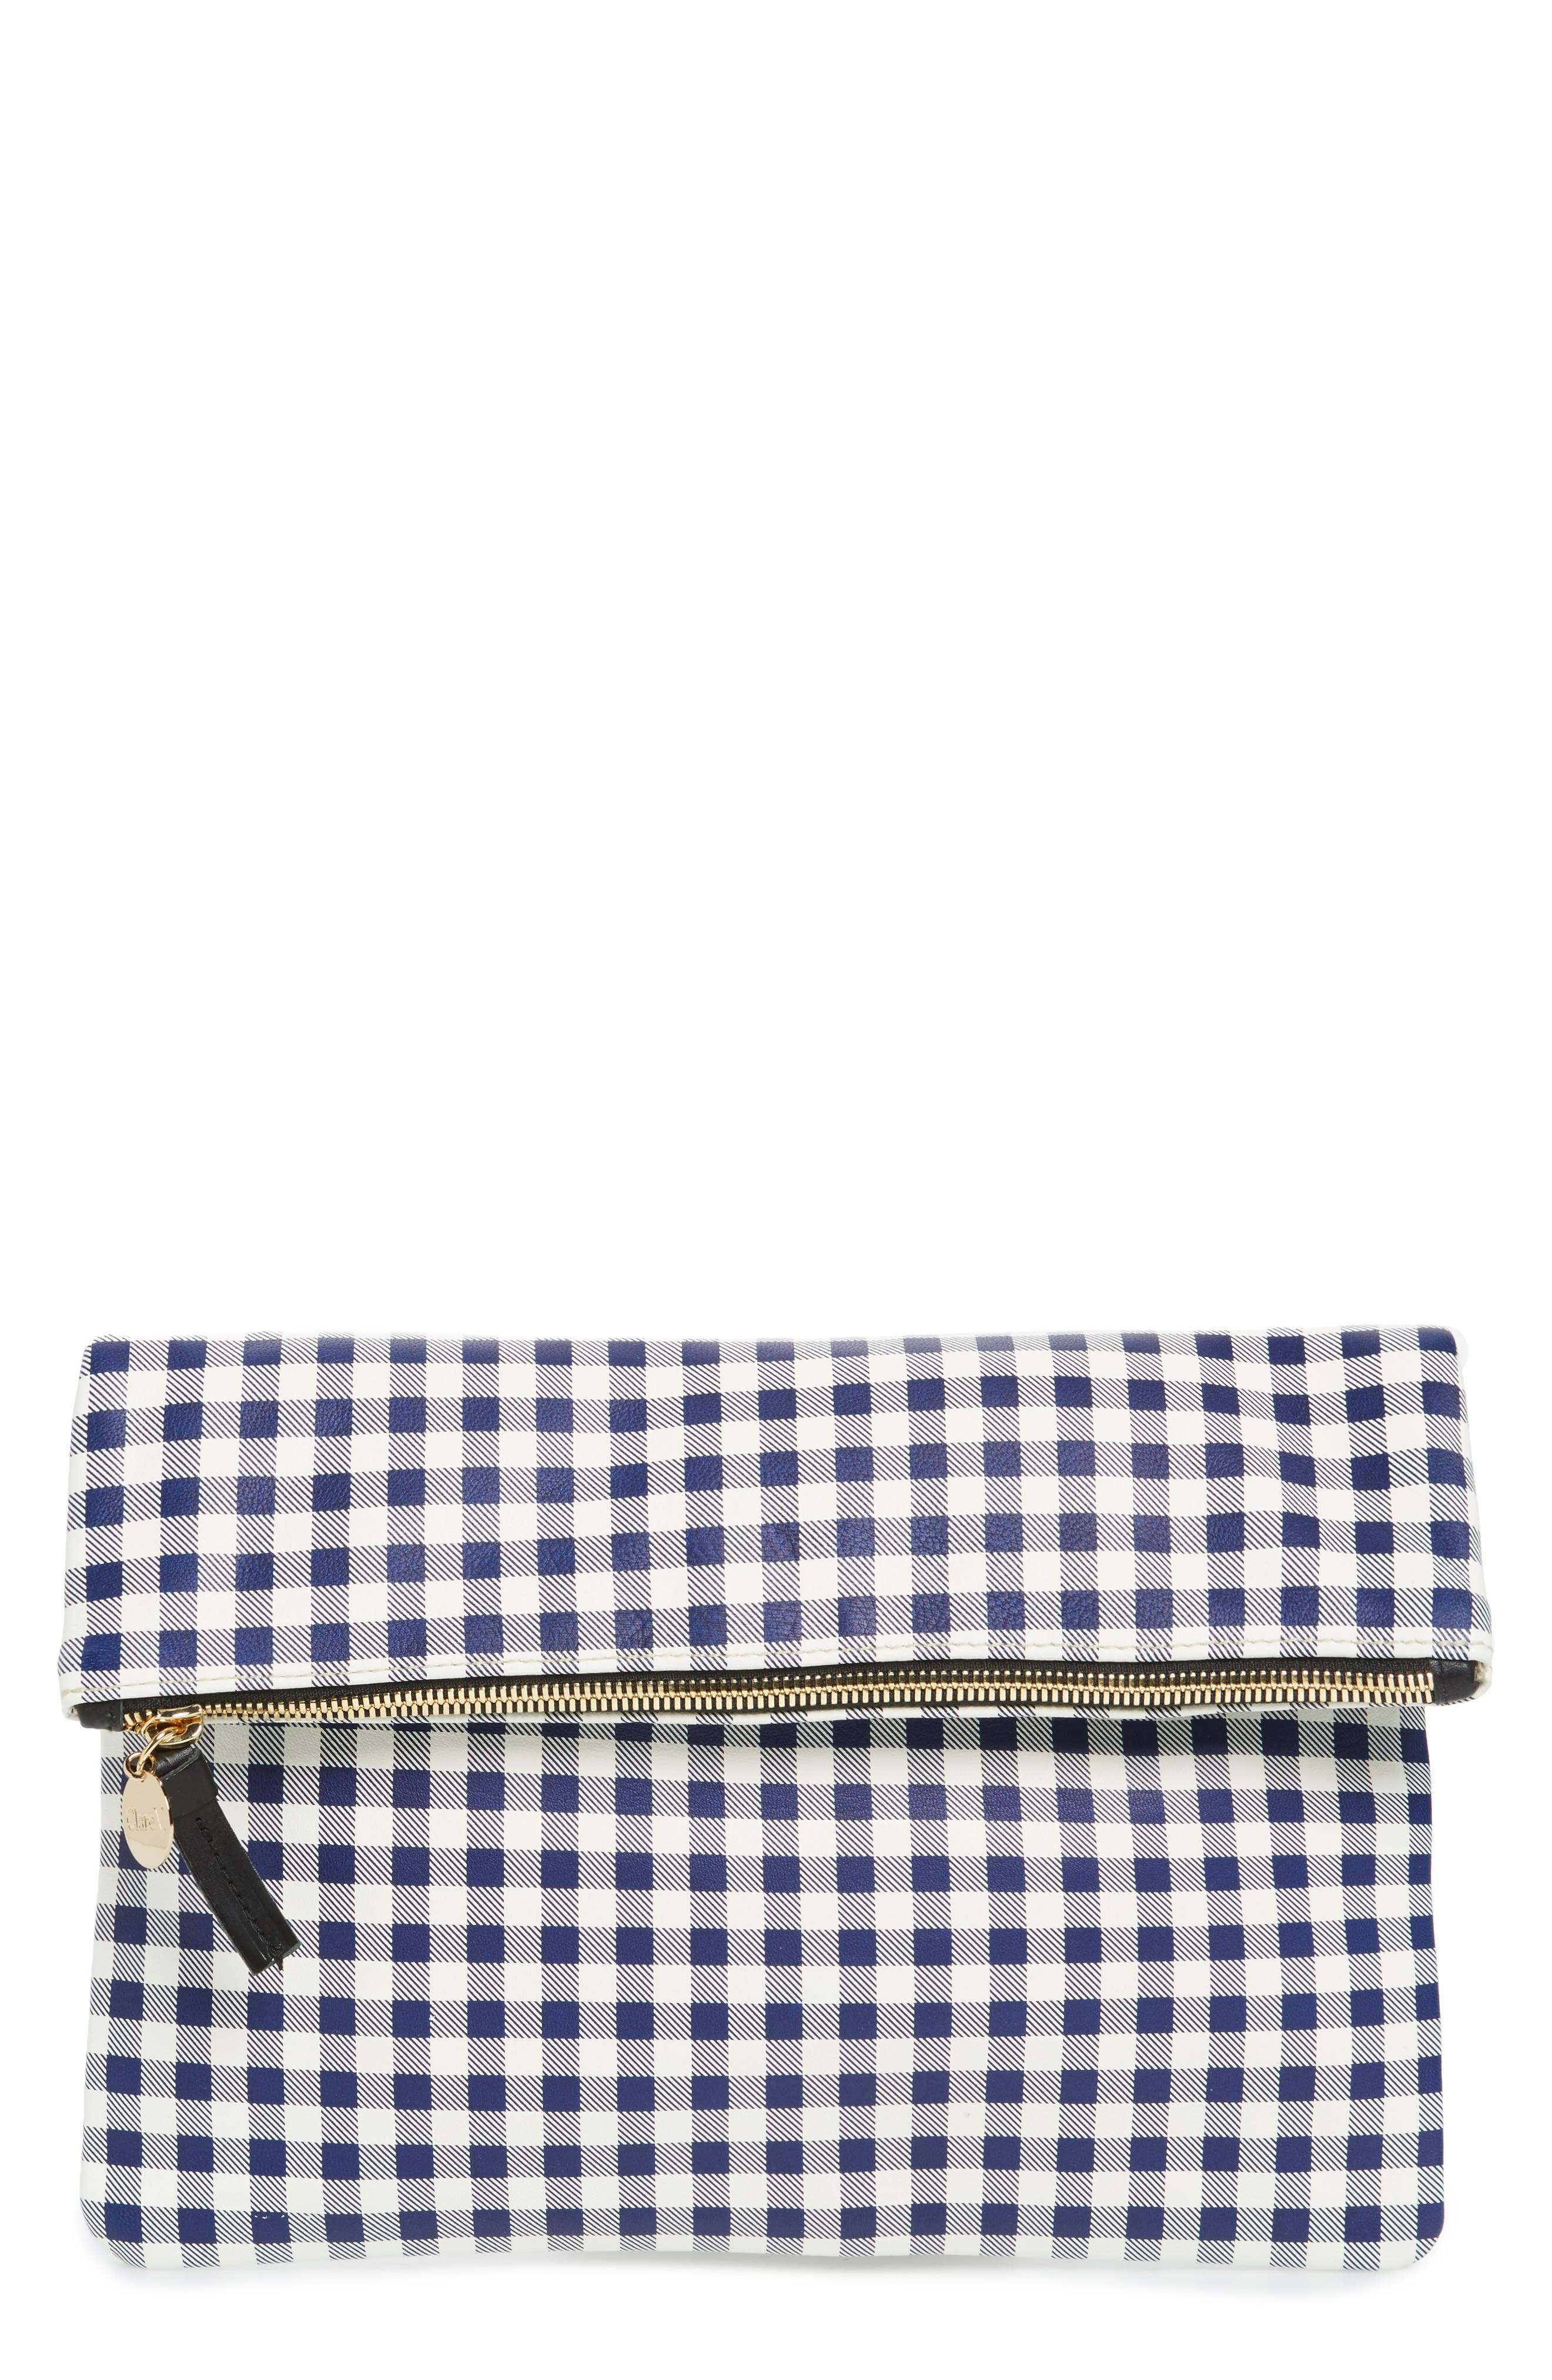 Alternate Image 1 Selected - Clare V. Gingham Leather Foldover Clutch